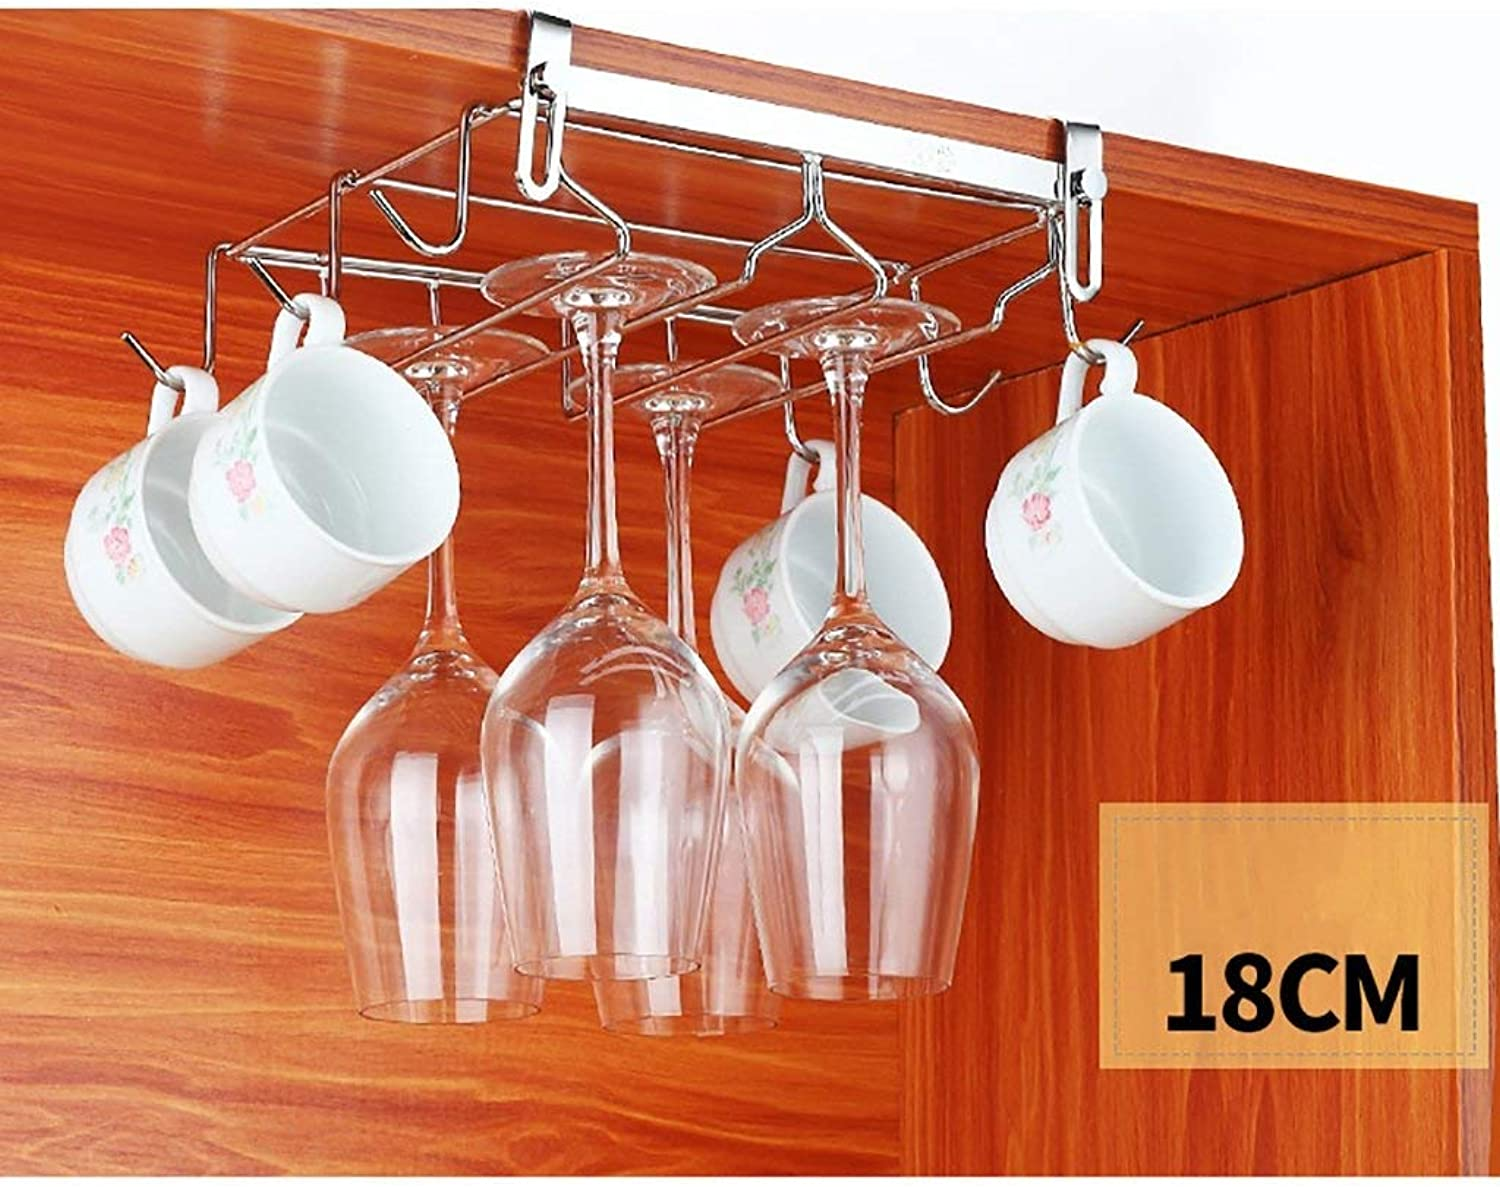 Red Wine Shelf 304 Stainless Steel Hanging Wine Rack Coffee Cup Holder for Kitchens (Size   24CM-B) (Size   18CM-B)